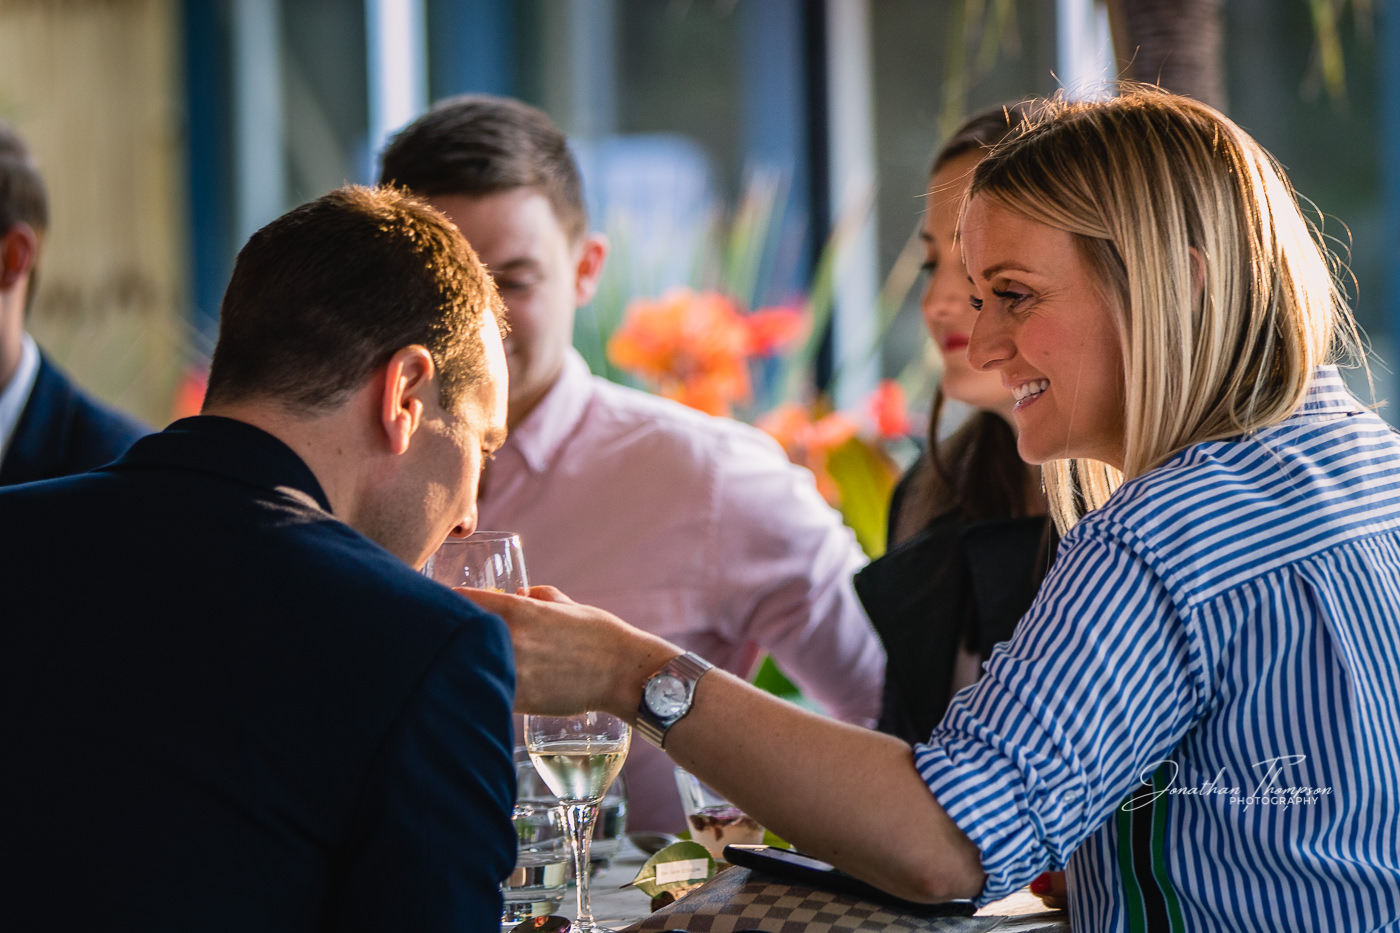 Blonde lady holds out her wine glass so the man next to her can smell it, in an outdoor dining scene at Chester Zoo